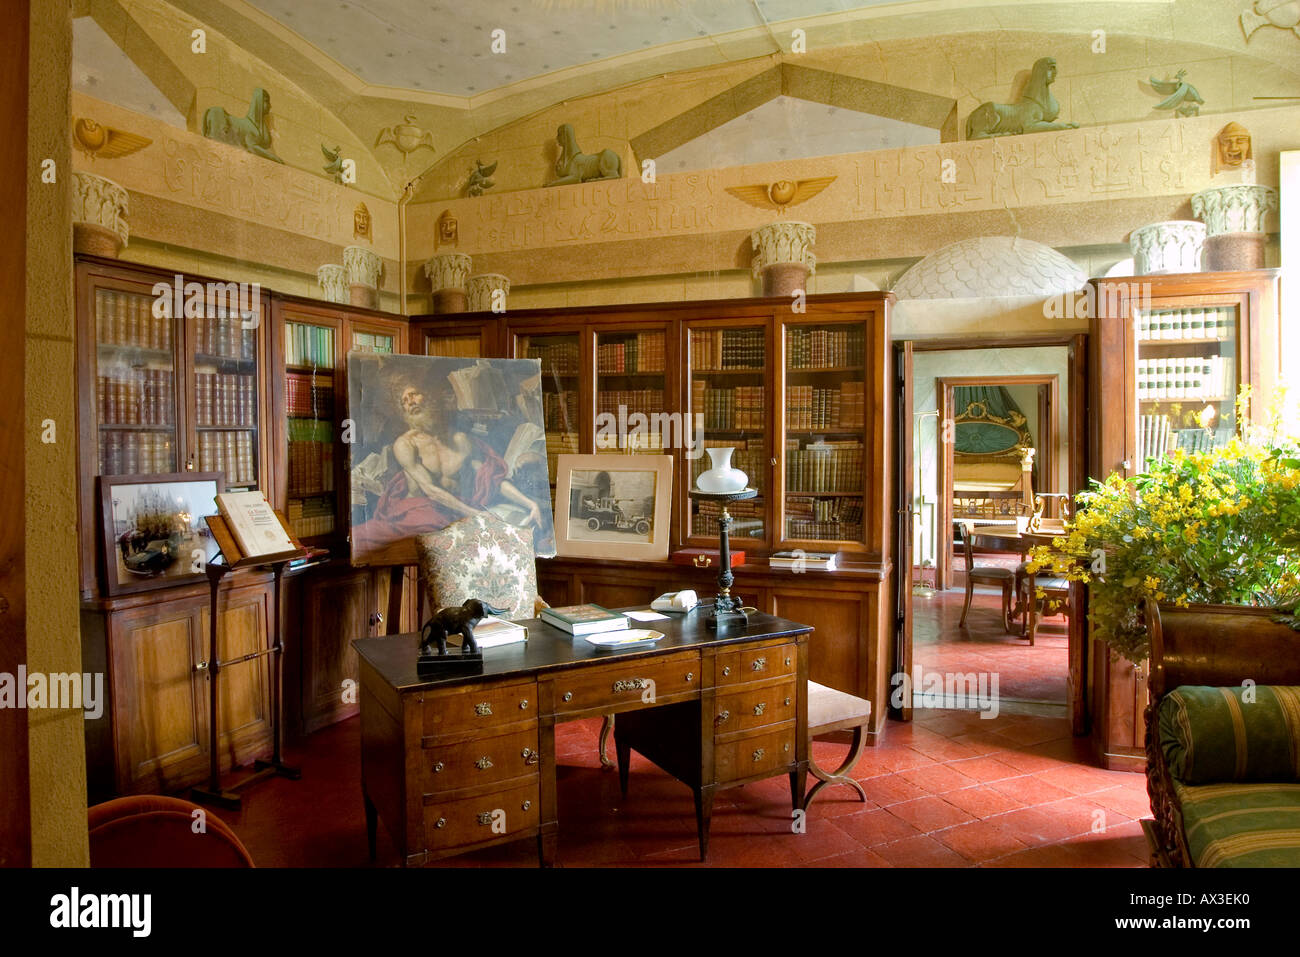 Library in an ornate Italian Villa in Tuscany with antique furniture - Library In An Ornate Italian Villa In Tuscany With Antique Furniture